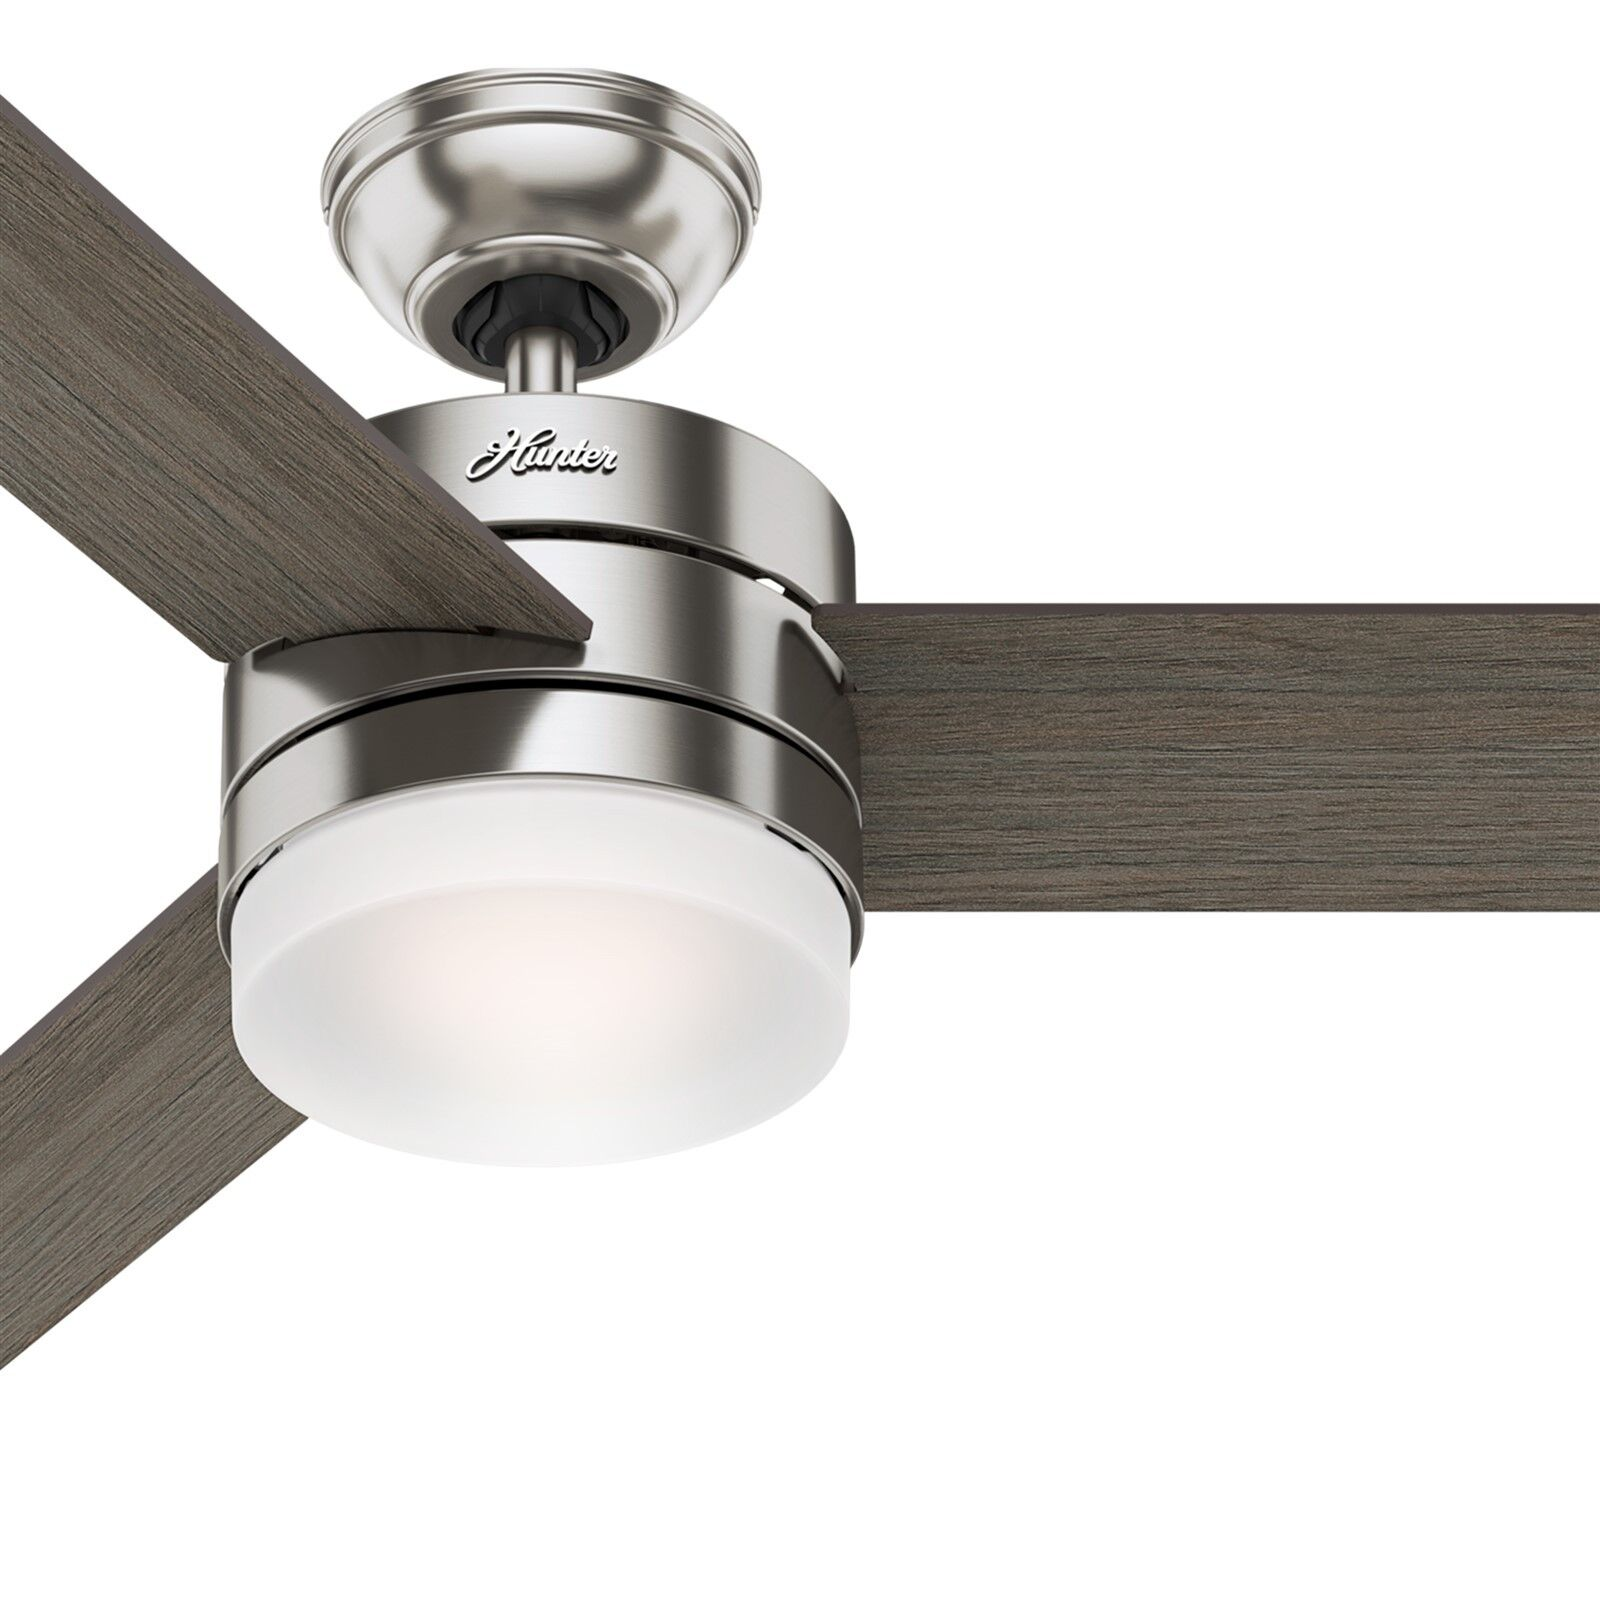 Image of: Hunter Fan 54 Inch Modern Ceiling Fan With Led Light Kit In Brushed Nickel Ebay